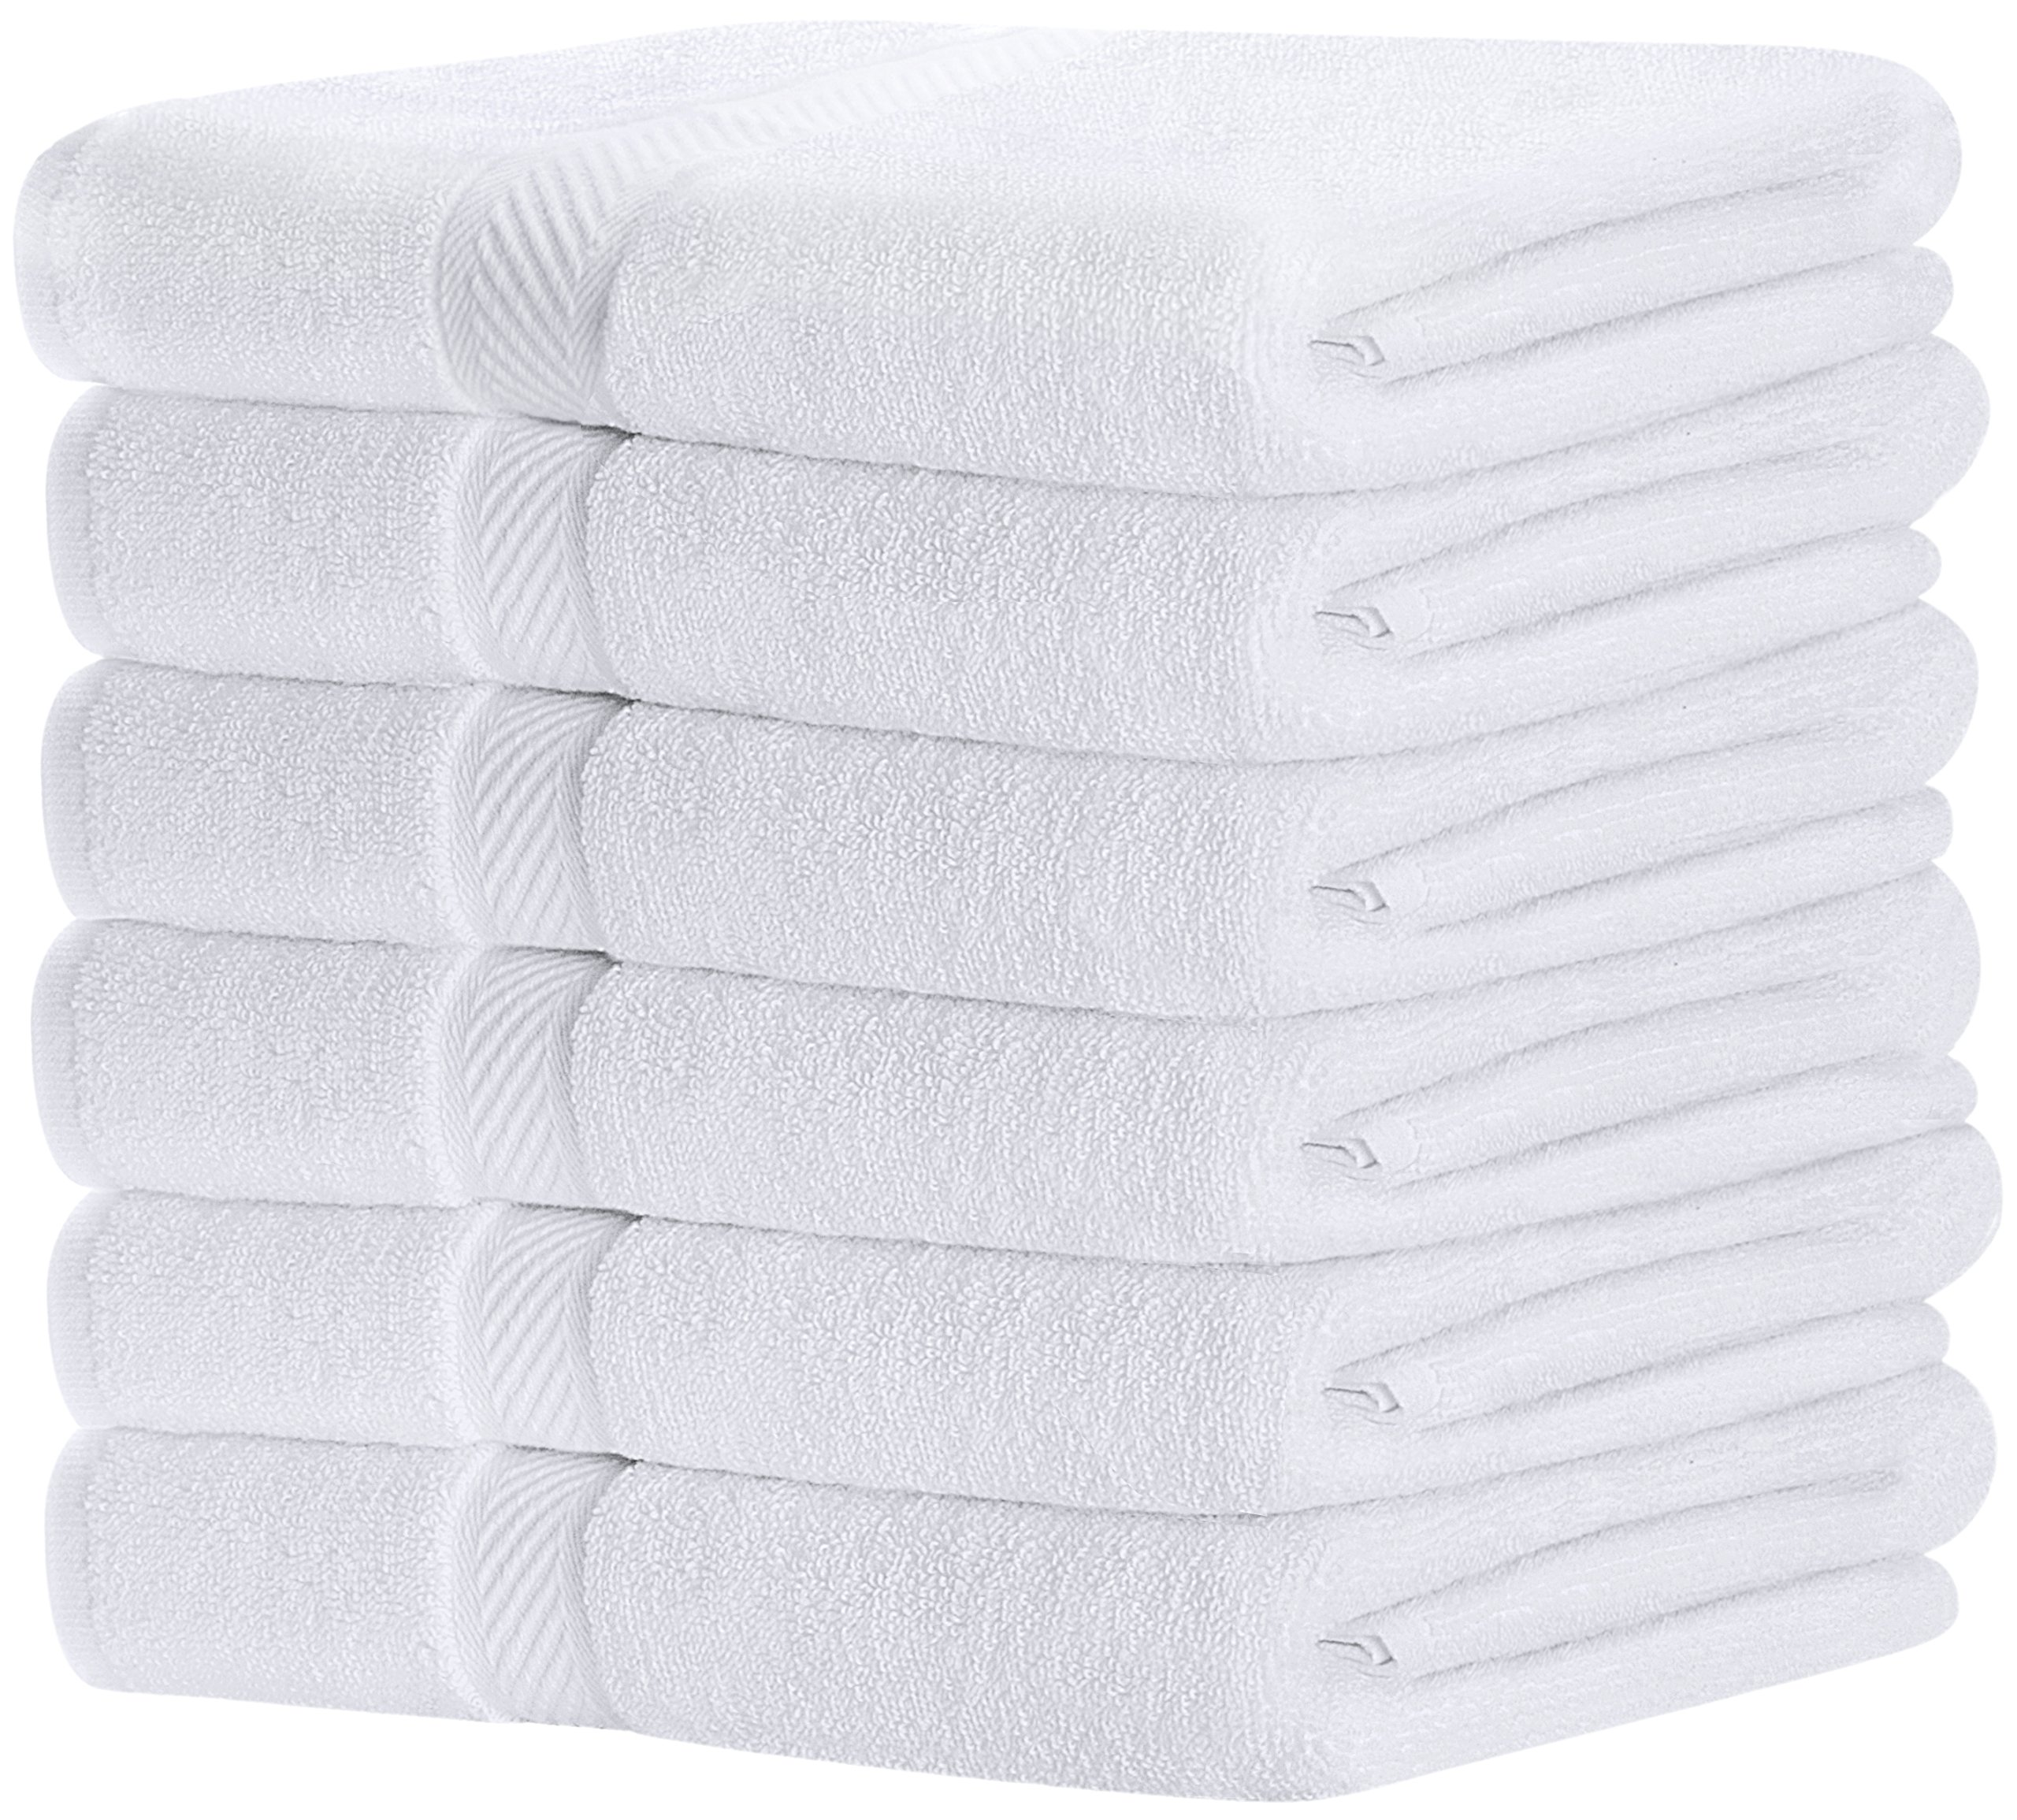 Utopia Towels 100% Cotton White Bath Towels Set (6 Pack, 22 x 44 Inch) Lightweight High Absorbency, Multipurpose, Quick Drying, Pool Gym Towels Set